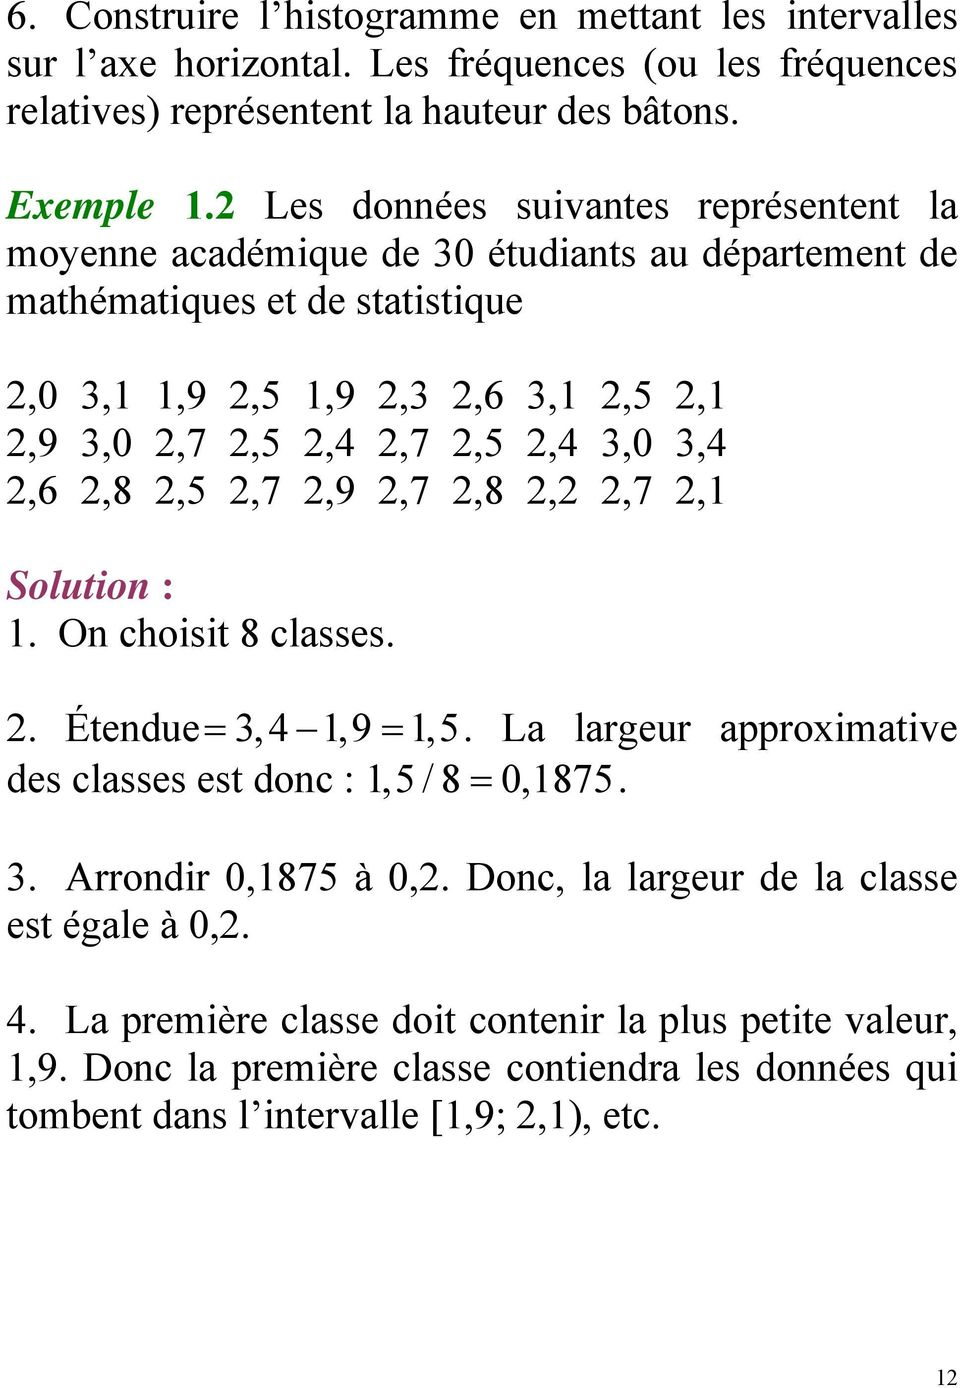 3,4,6,8,5,7,9,7,8,,7,1 Solution : 1. On choisit 8 classes.. Étendue= 3, 4 1,9 = 1,5. La largeur approximative des classes est donc : 1,5 / 8 = 0,1875. 3. Arrondir 0,1875 à 0,.